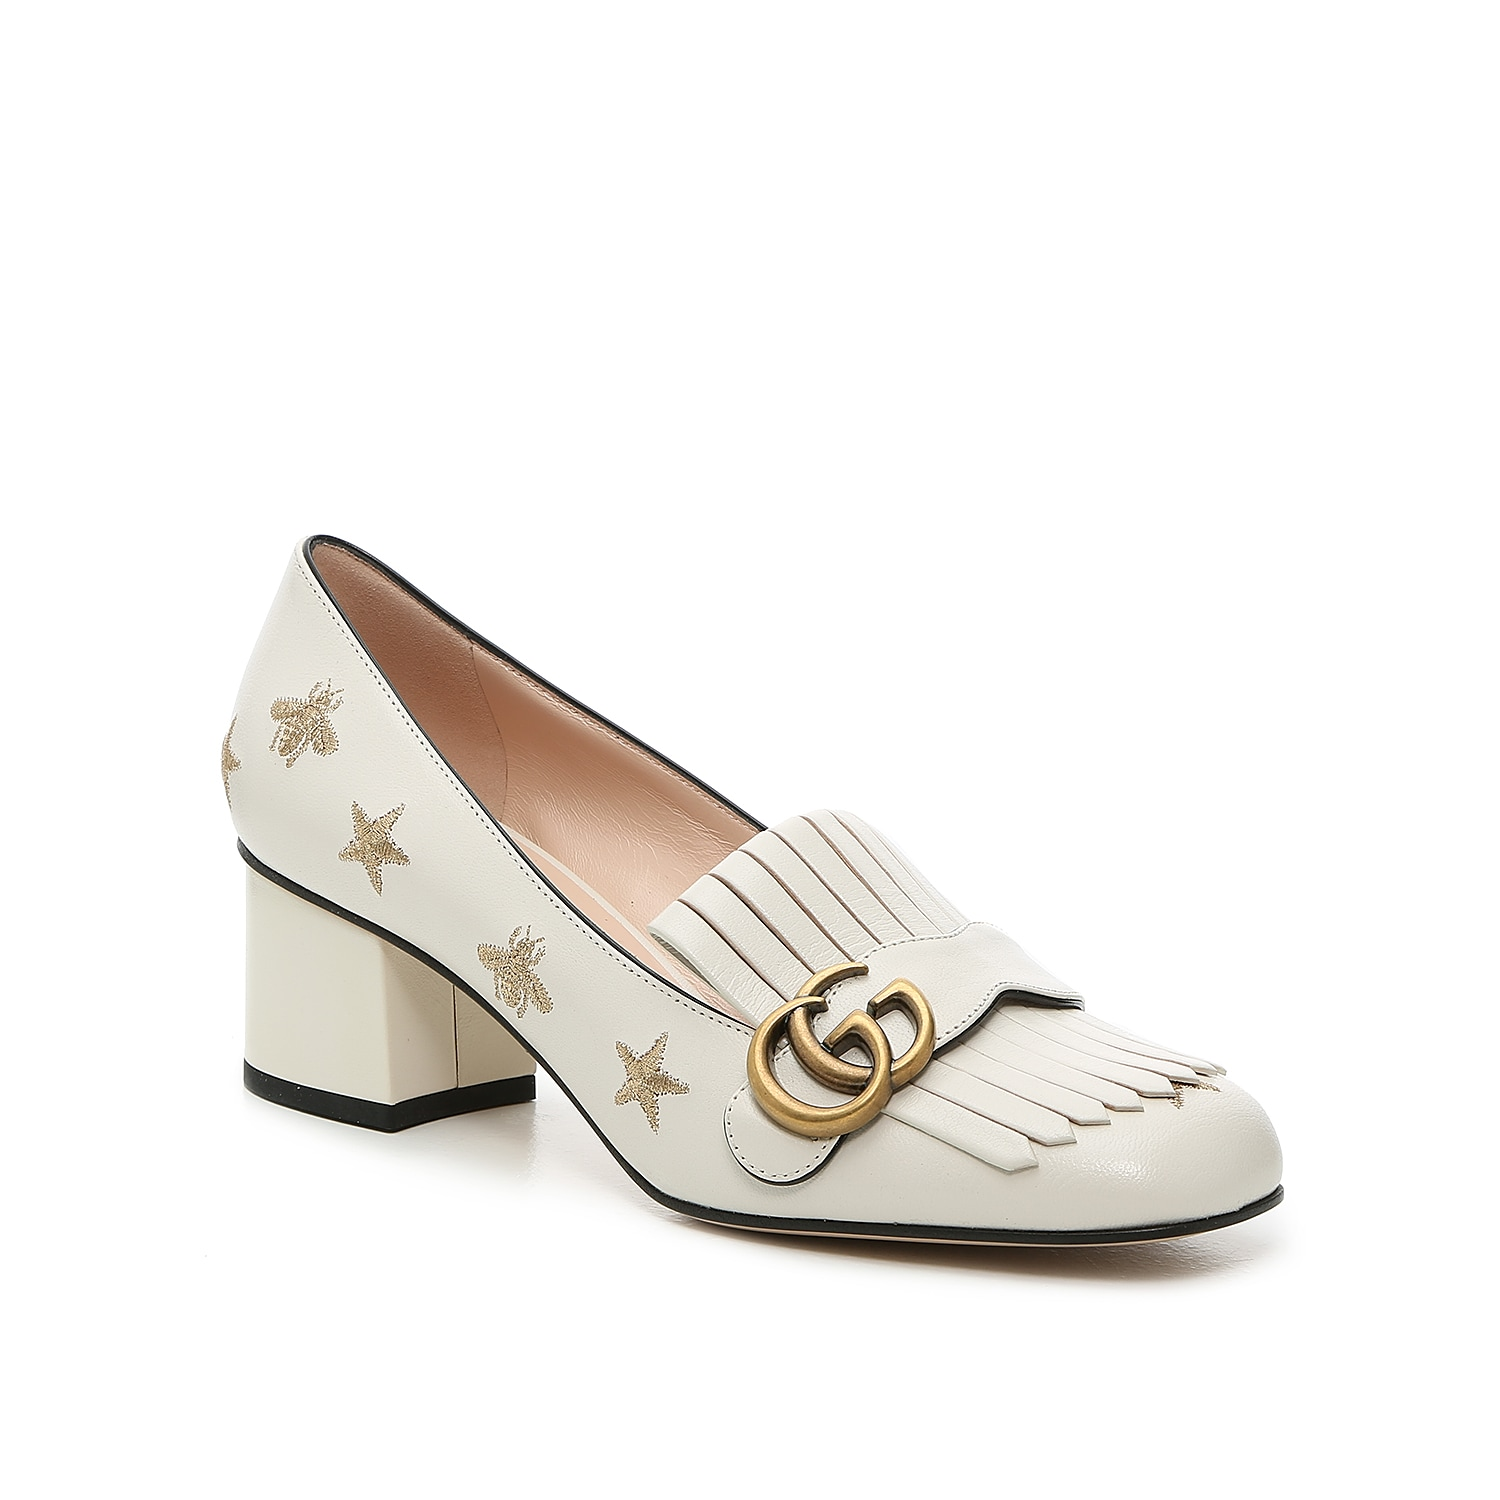 Elevating the appearance of a classic loafer, the Marmont 55 is a timeless Gucci design. Double G hardware with an antique gild decorates folded kiltie fringe that drapes over the vamp and draws attention to the modern yet softened square toe. Studded stars and golden bee emblems add whimsy to these designer dress shoes.   Made in Italy from carefully selected materials. To extend product life, protect from direct light, heat, and rain. Fill shoe with tissue paper to help maintain the shape and absorb humidity. Store in the provided flannel bag and structured shoe box.